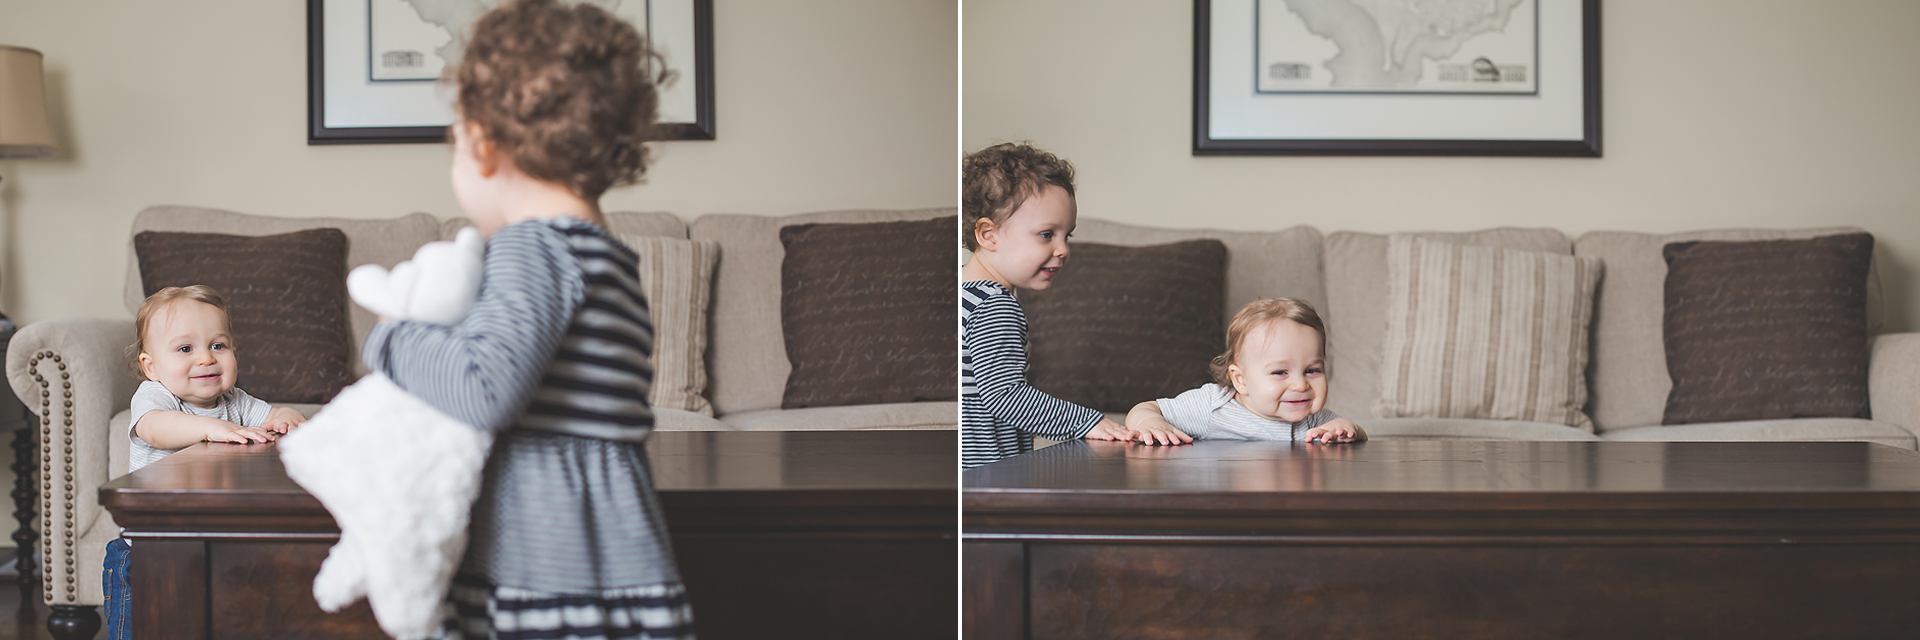 1st birthday lifestyle session, Rockville, MD Newborn Baby and Family Photographer   Tonya Teran Photography